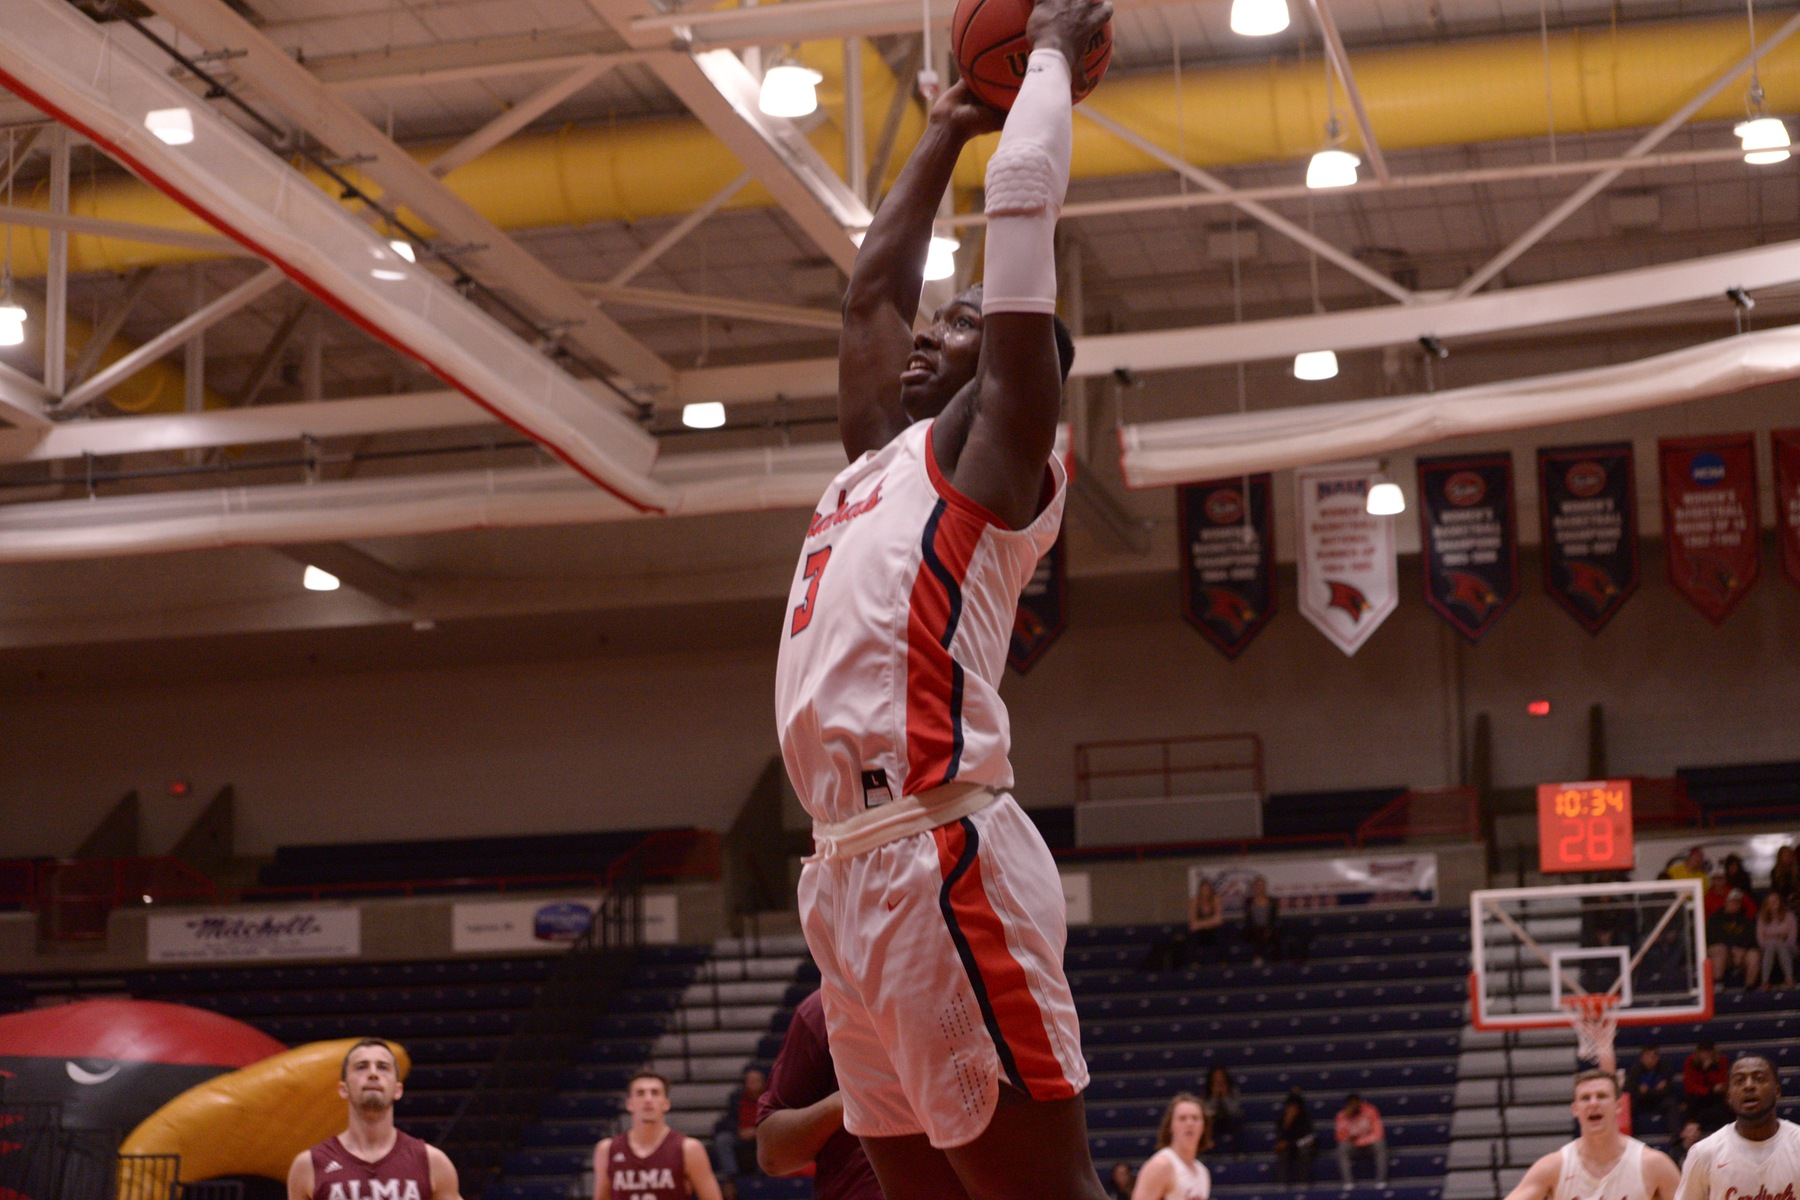 SVSU Men drop double overtime thriller at Davenport, 94-86